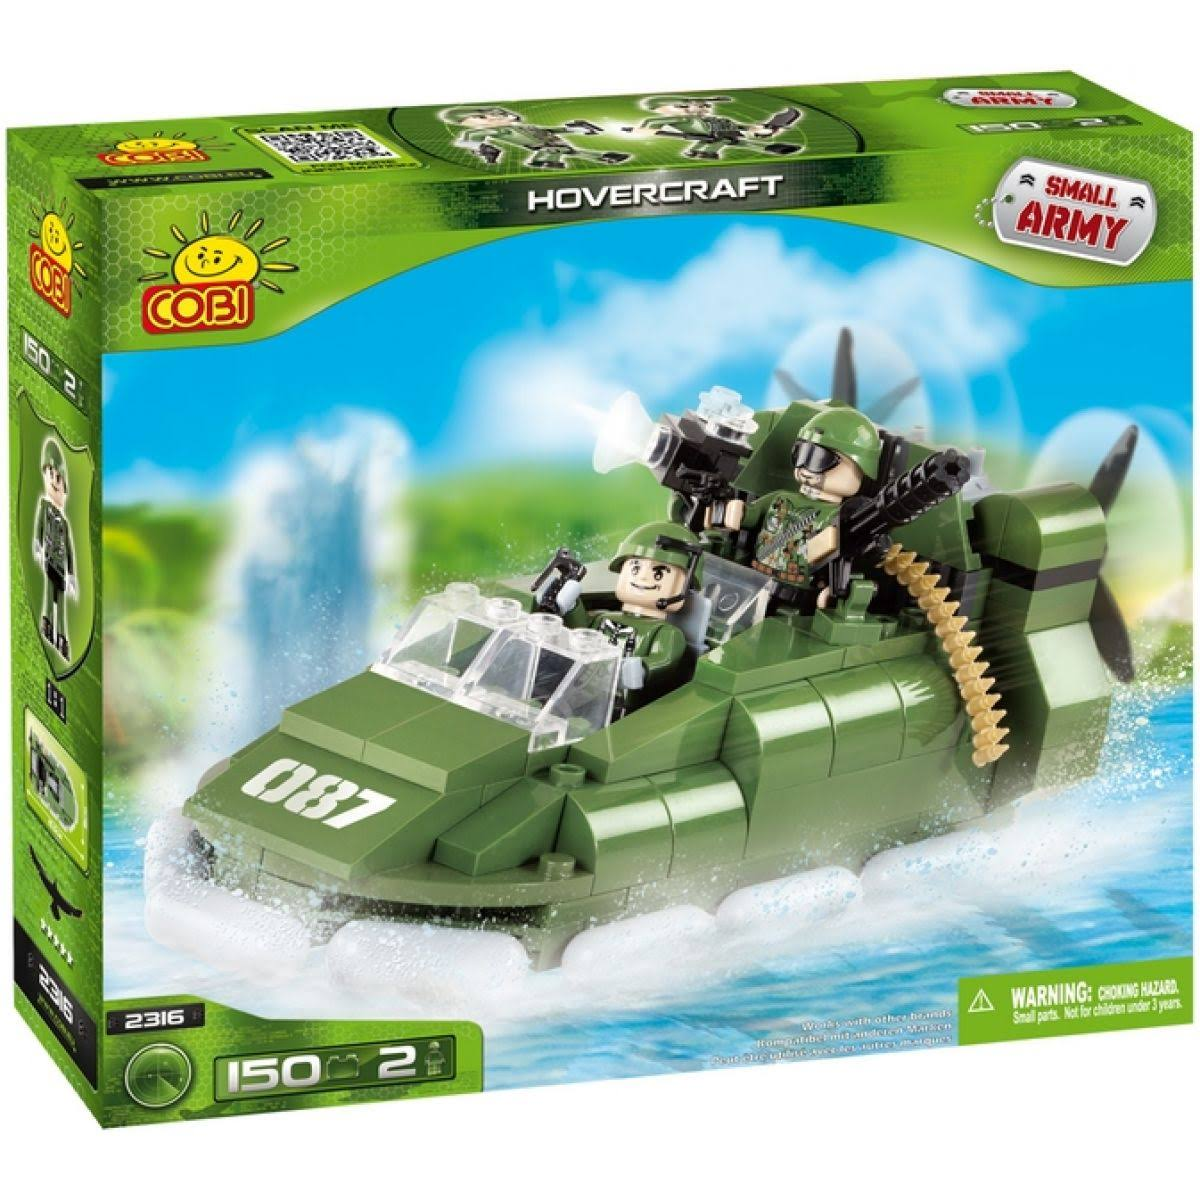 Cobi Blocks Small Army Hovercraft (150 Pieces)